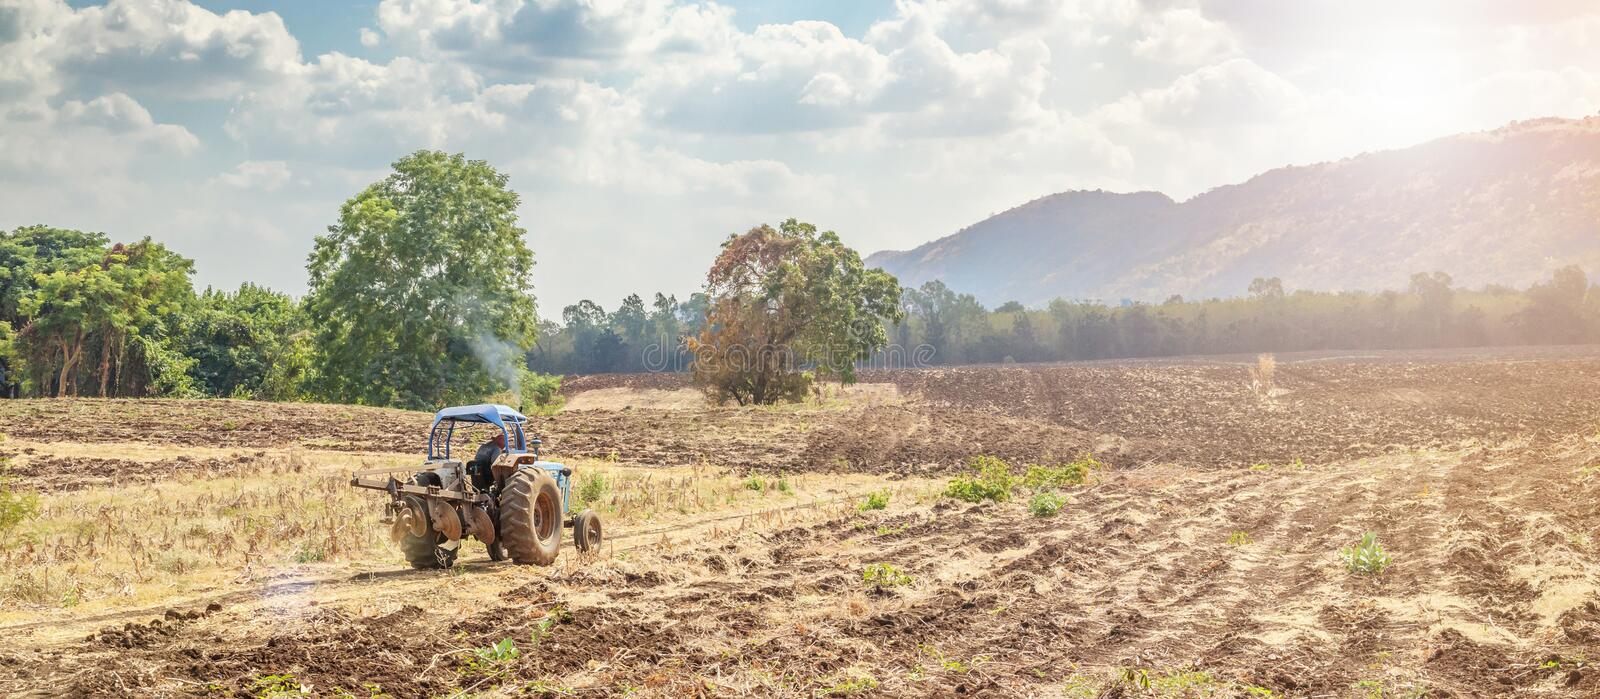 Farmer in tractor working and preparing land in agriculture field with mountain stock photos